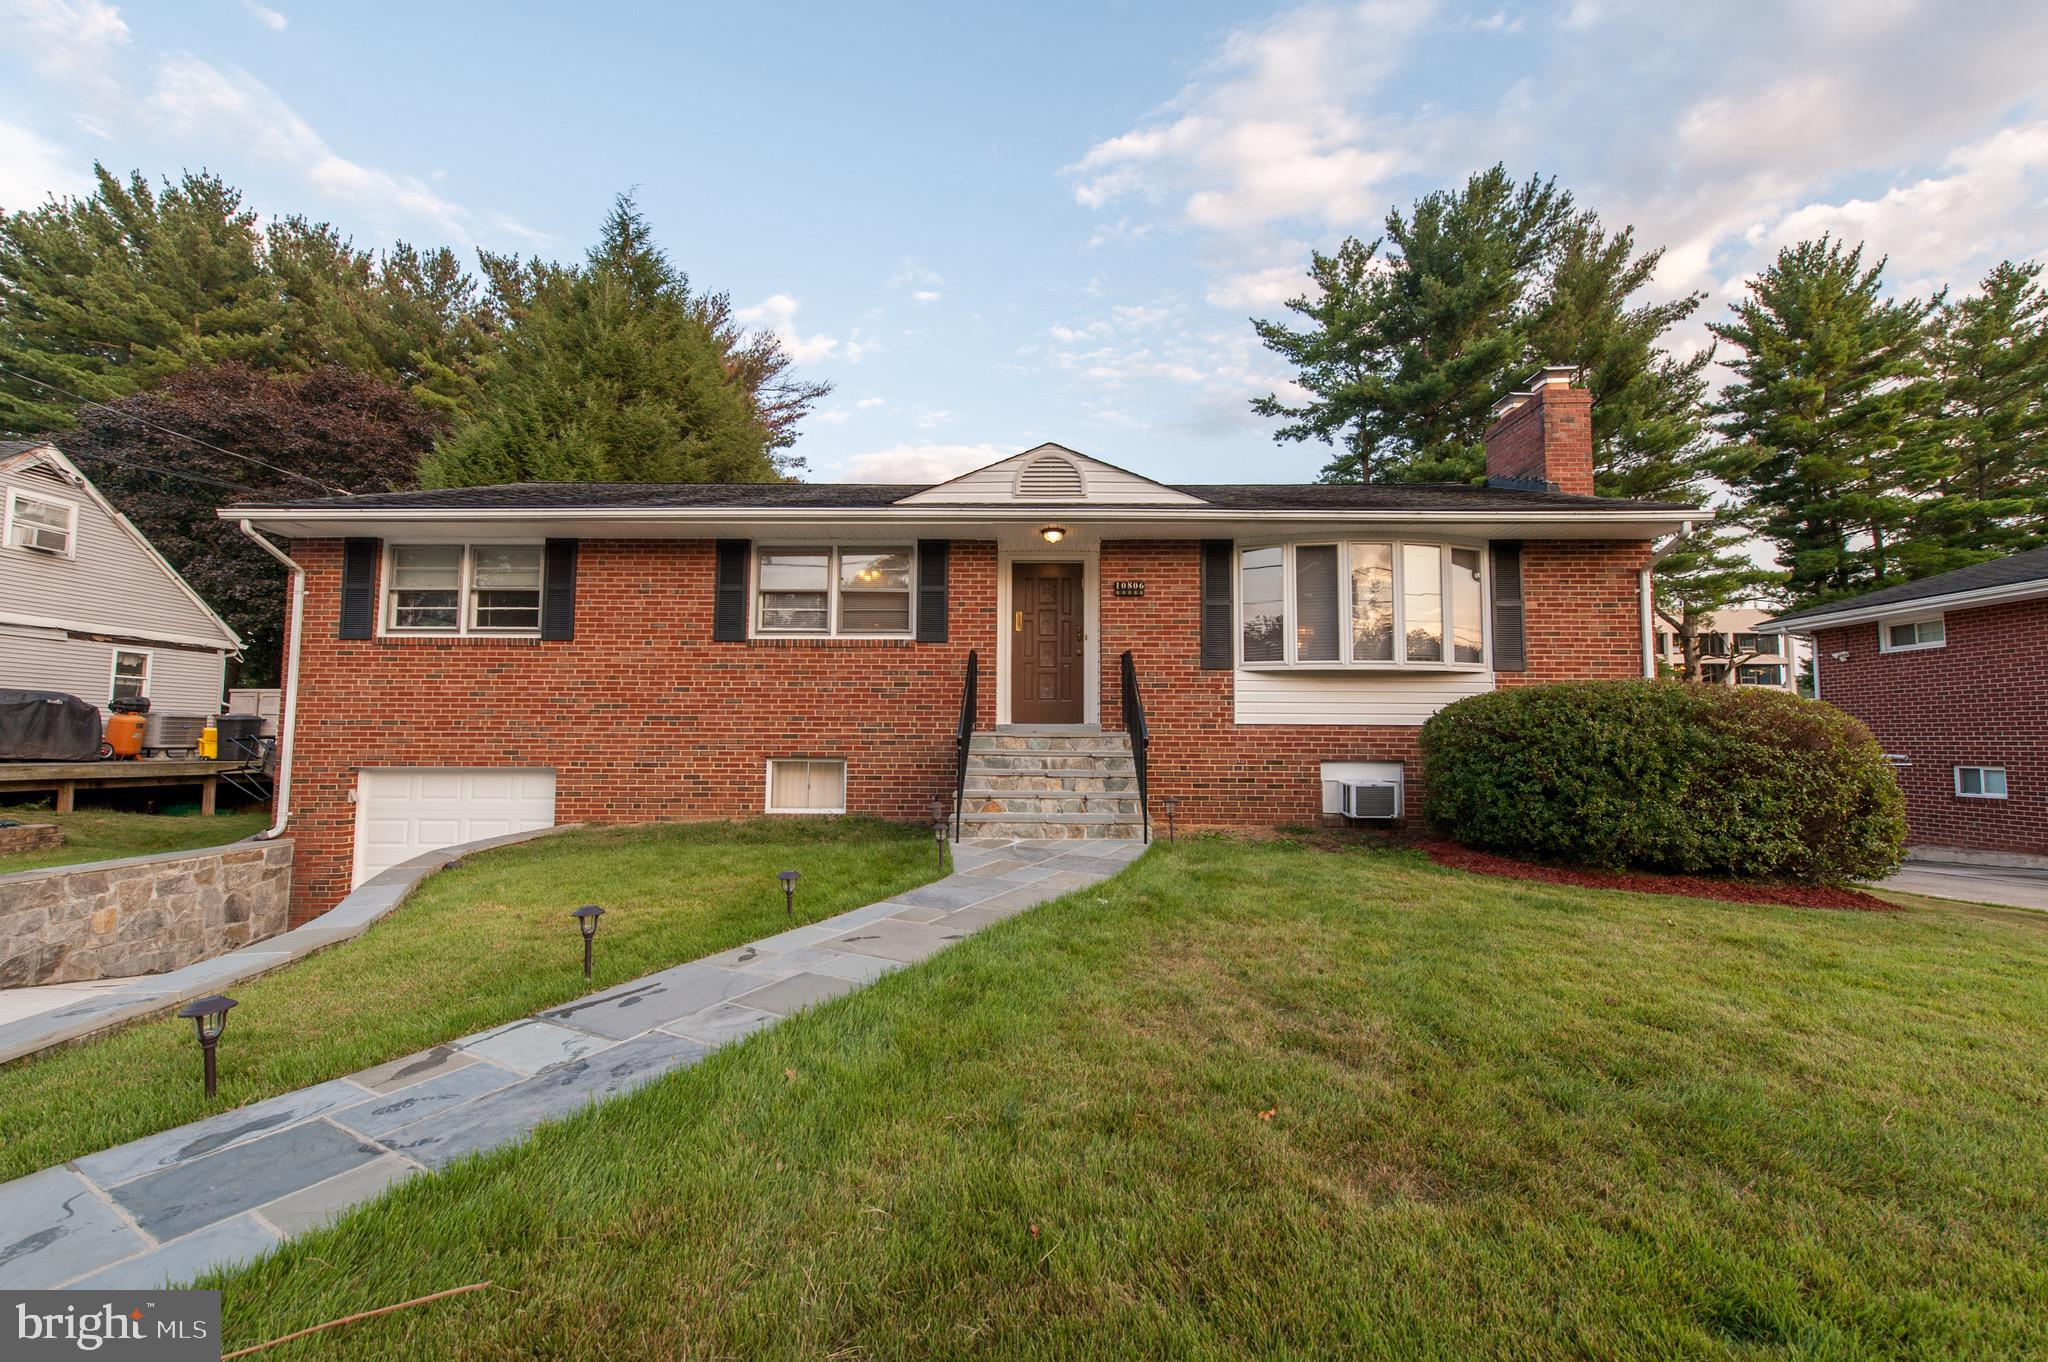 10806 CHILDS STREET, SILVER SPRING, MD 20901